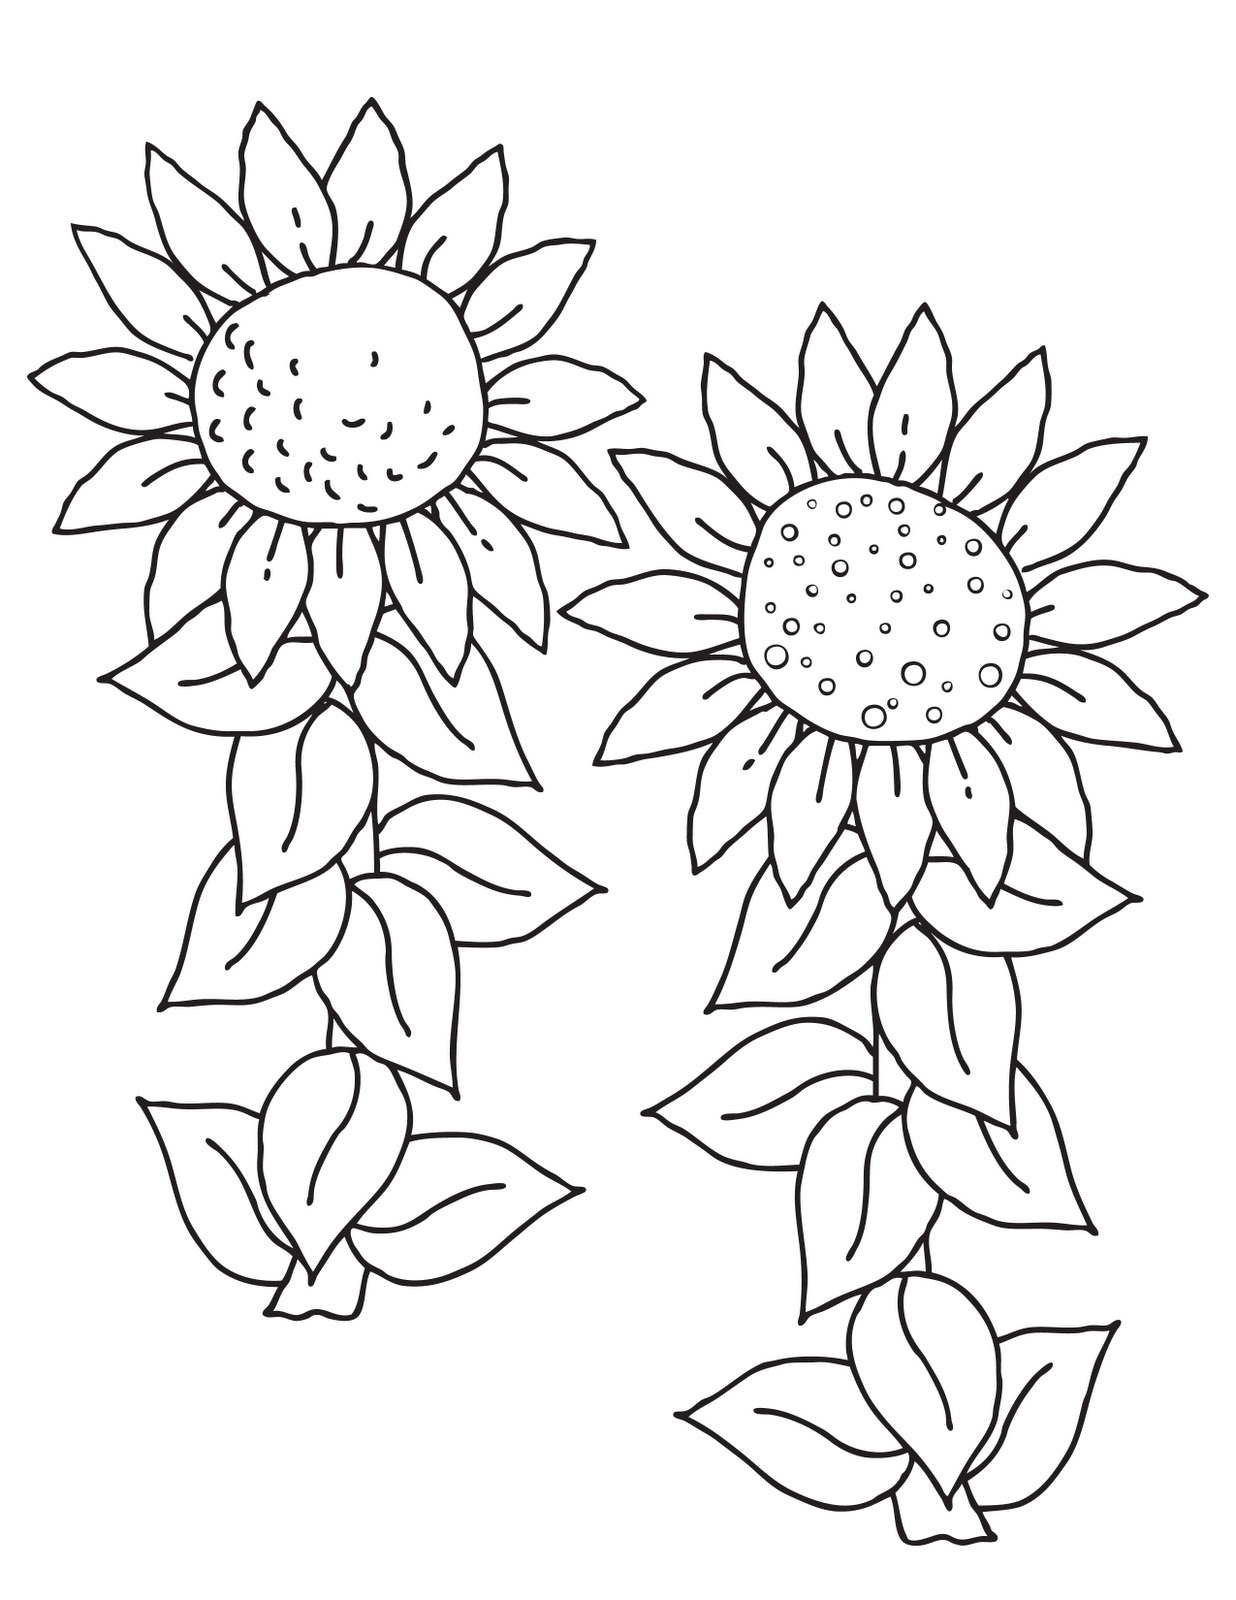 Free Printable Sunflower Coloring Pages For Kids Free Coloring Pictures To Print